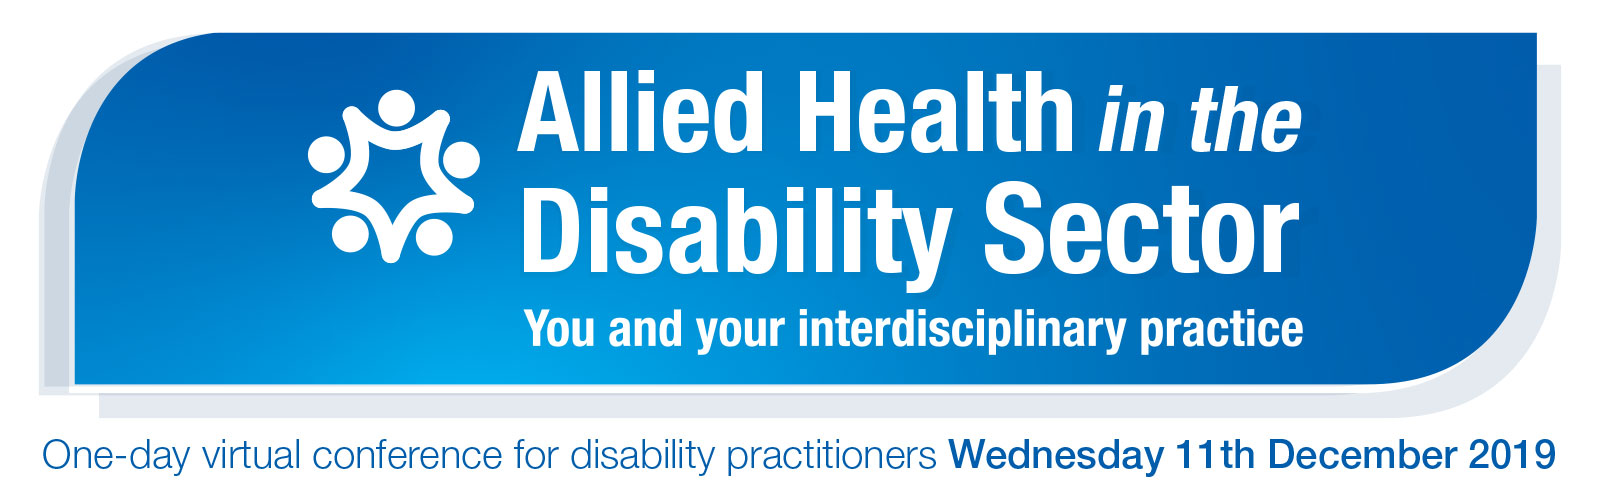 Allied Health In The Disability Sector - You and Your Interdisciplinary Practice